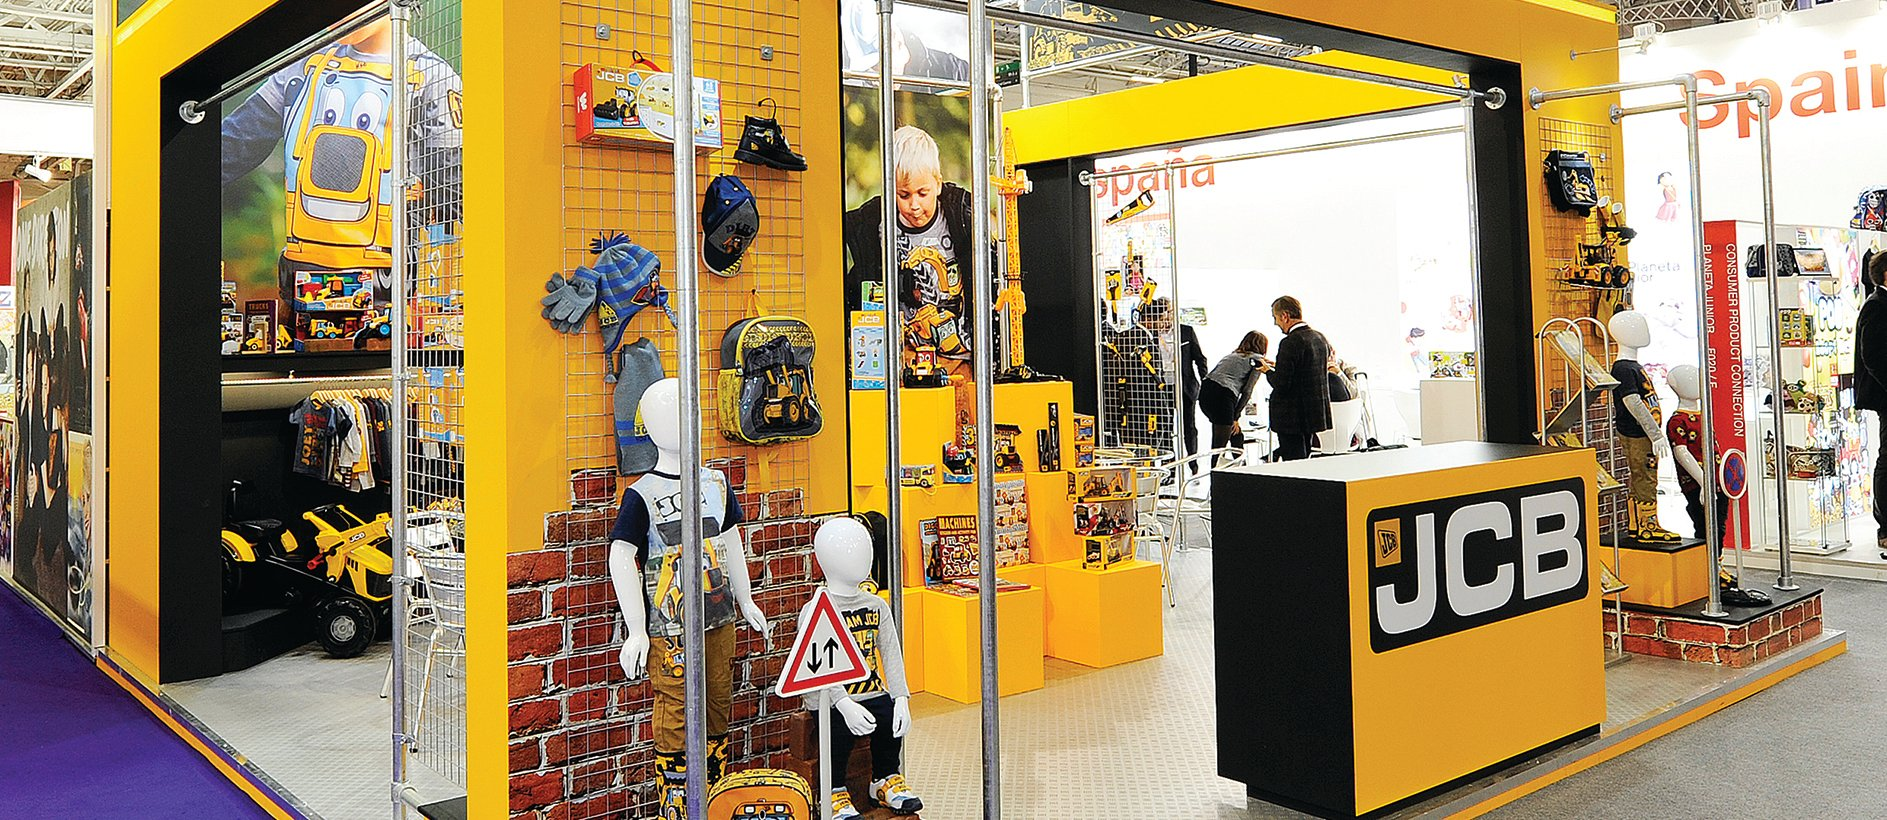 Custom exhibition stand with JCB branding